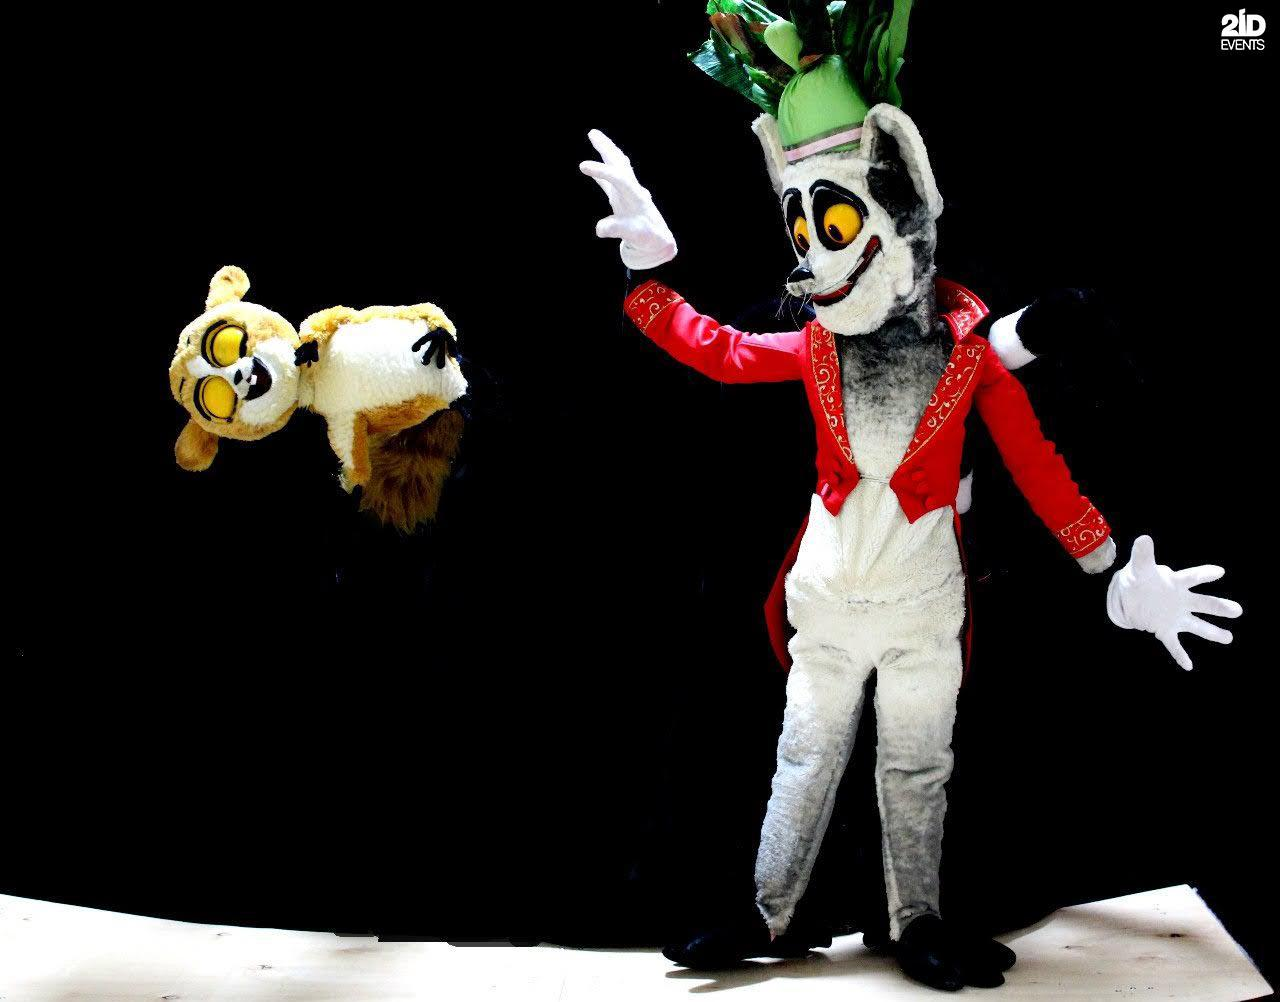 FUNNY PUPPETS FOR KIDS EVENTS